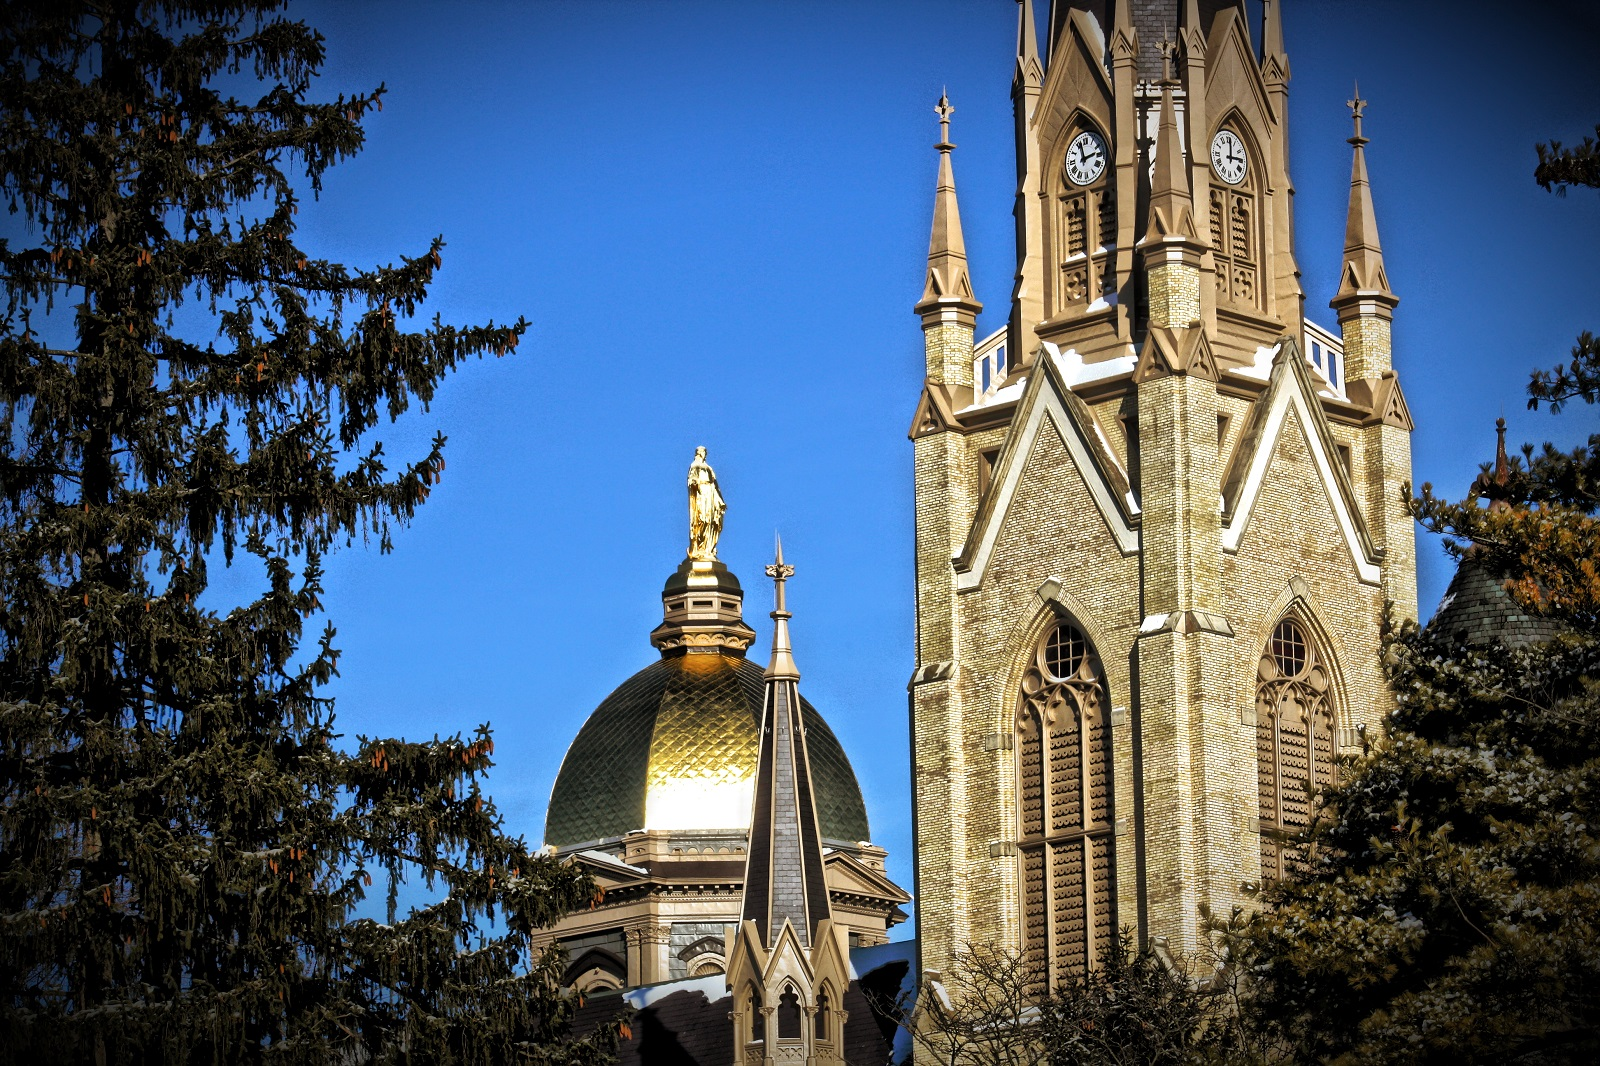 Notre Dame University in Indiana